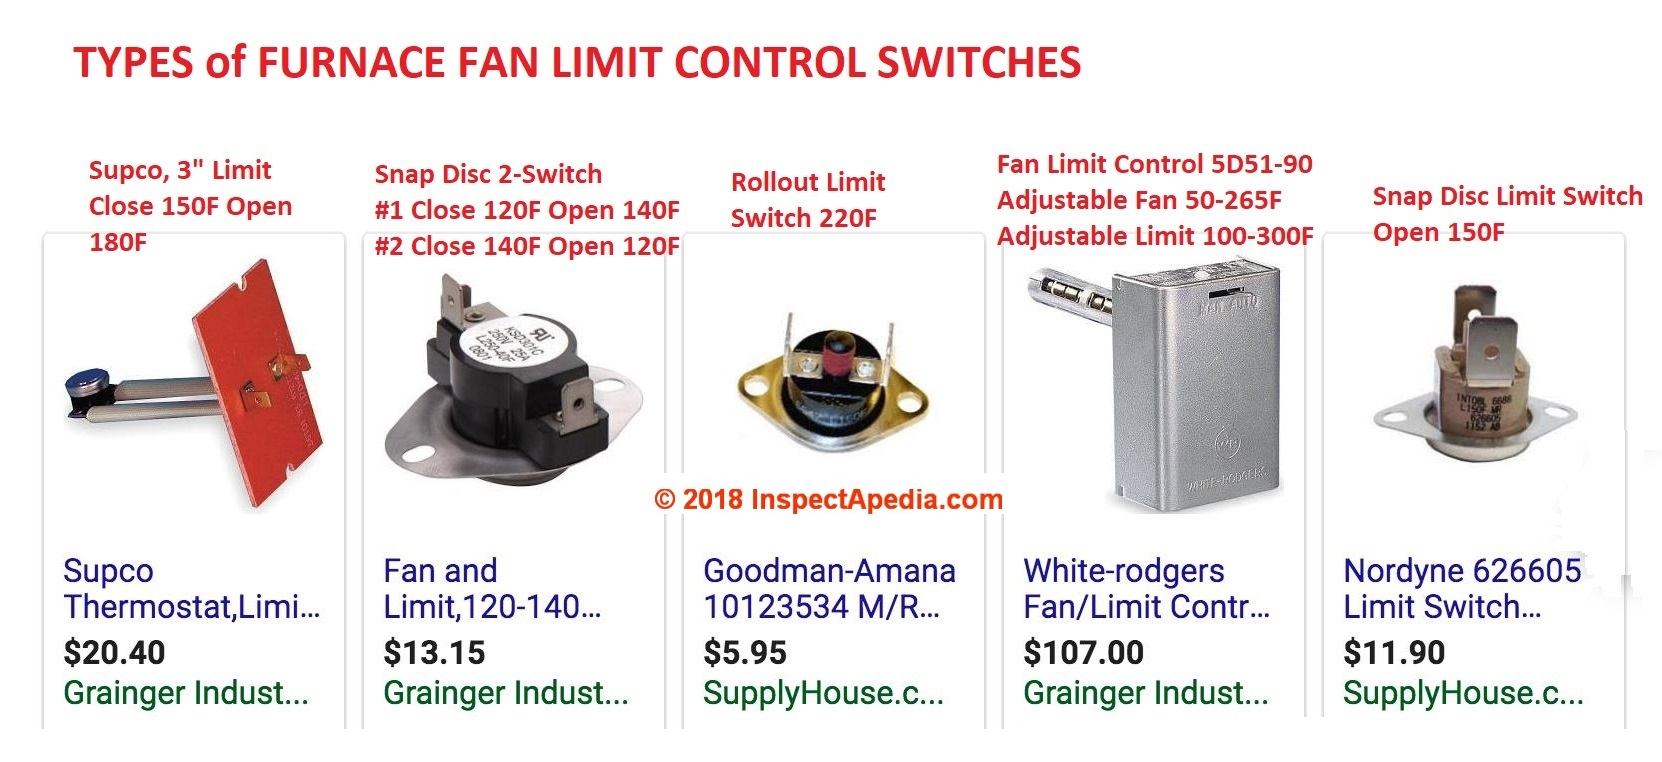 Furnace Fan Limit Switch How Does A Work To Climatrol Wiring Diagram Types Of Control Switches C